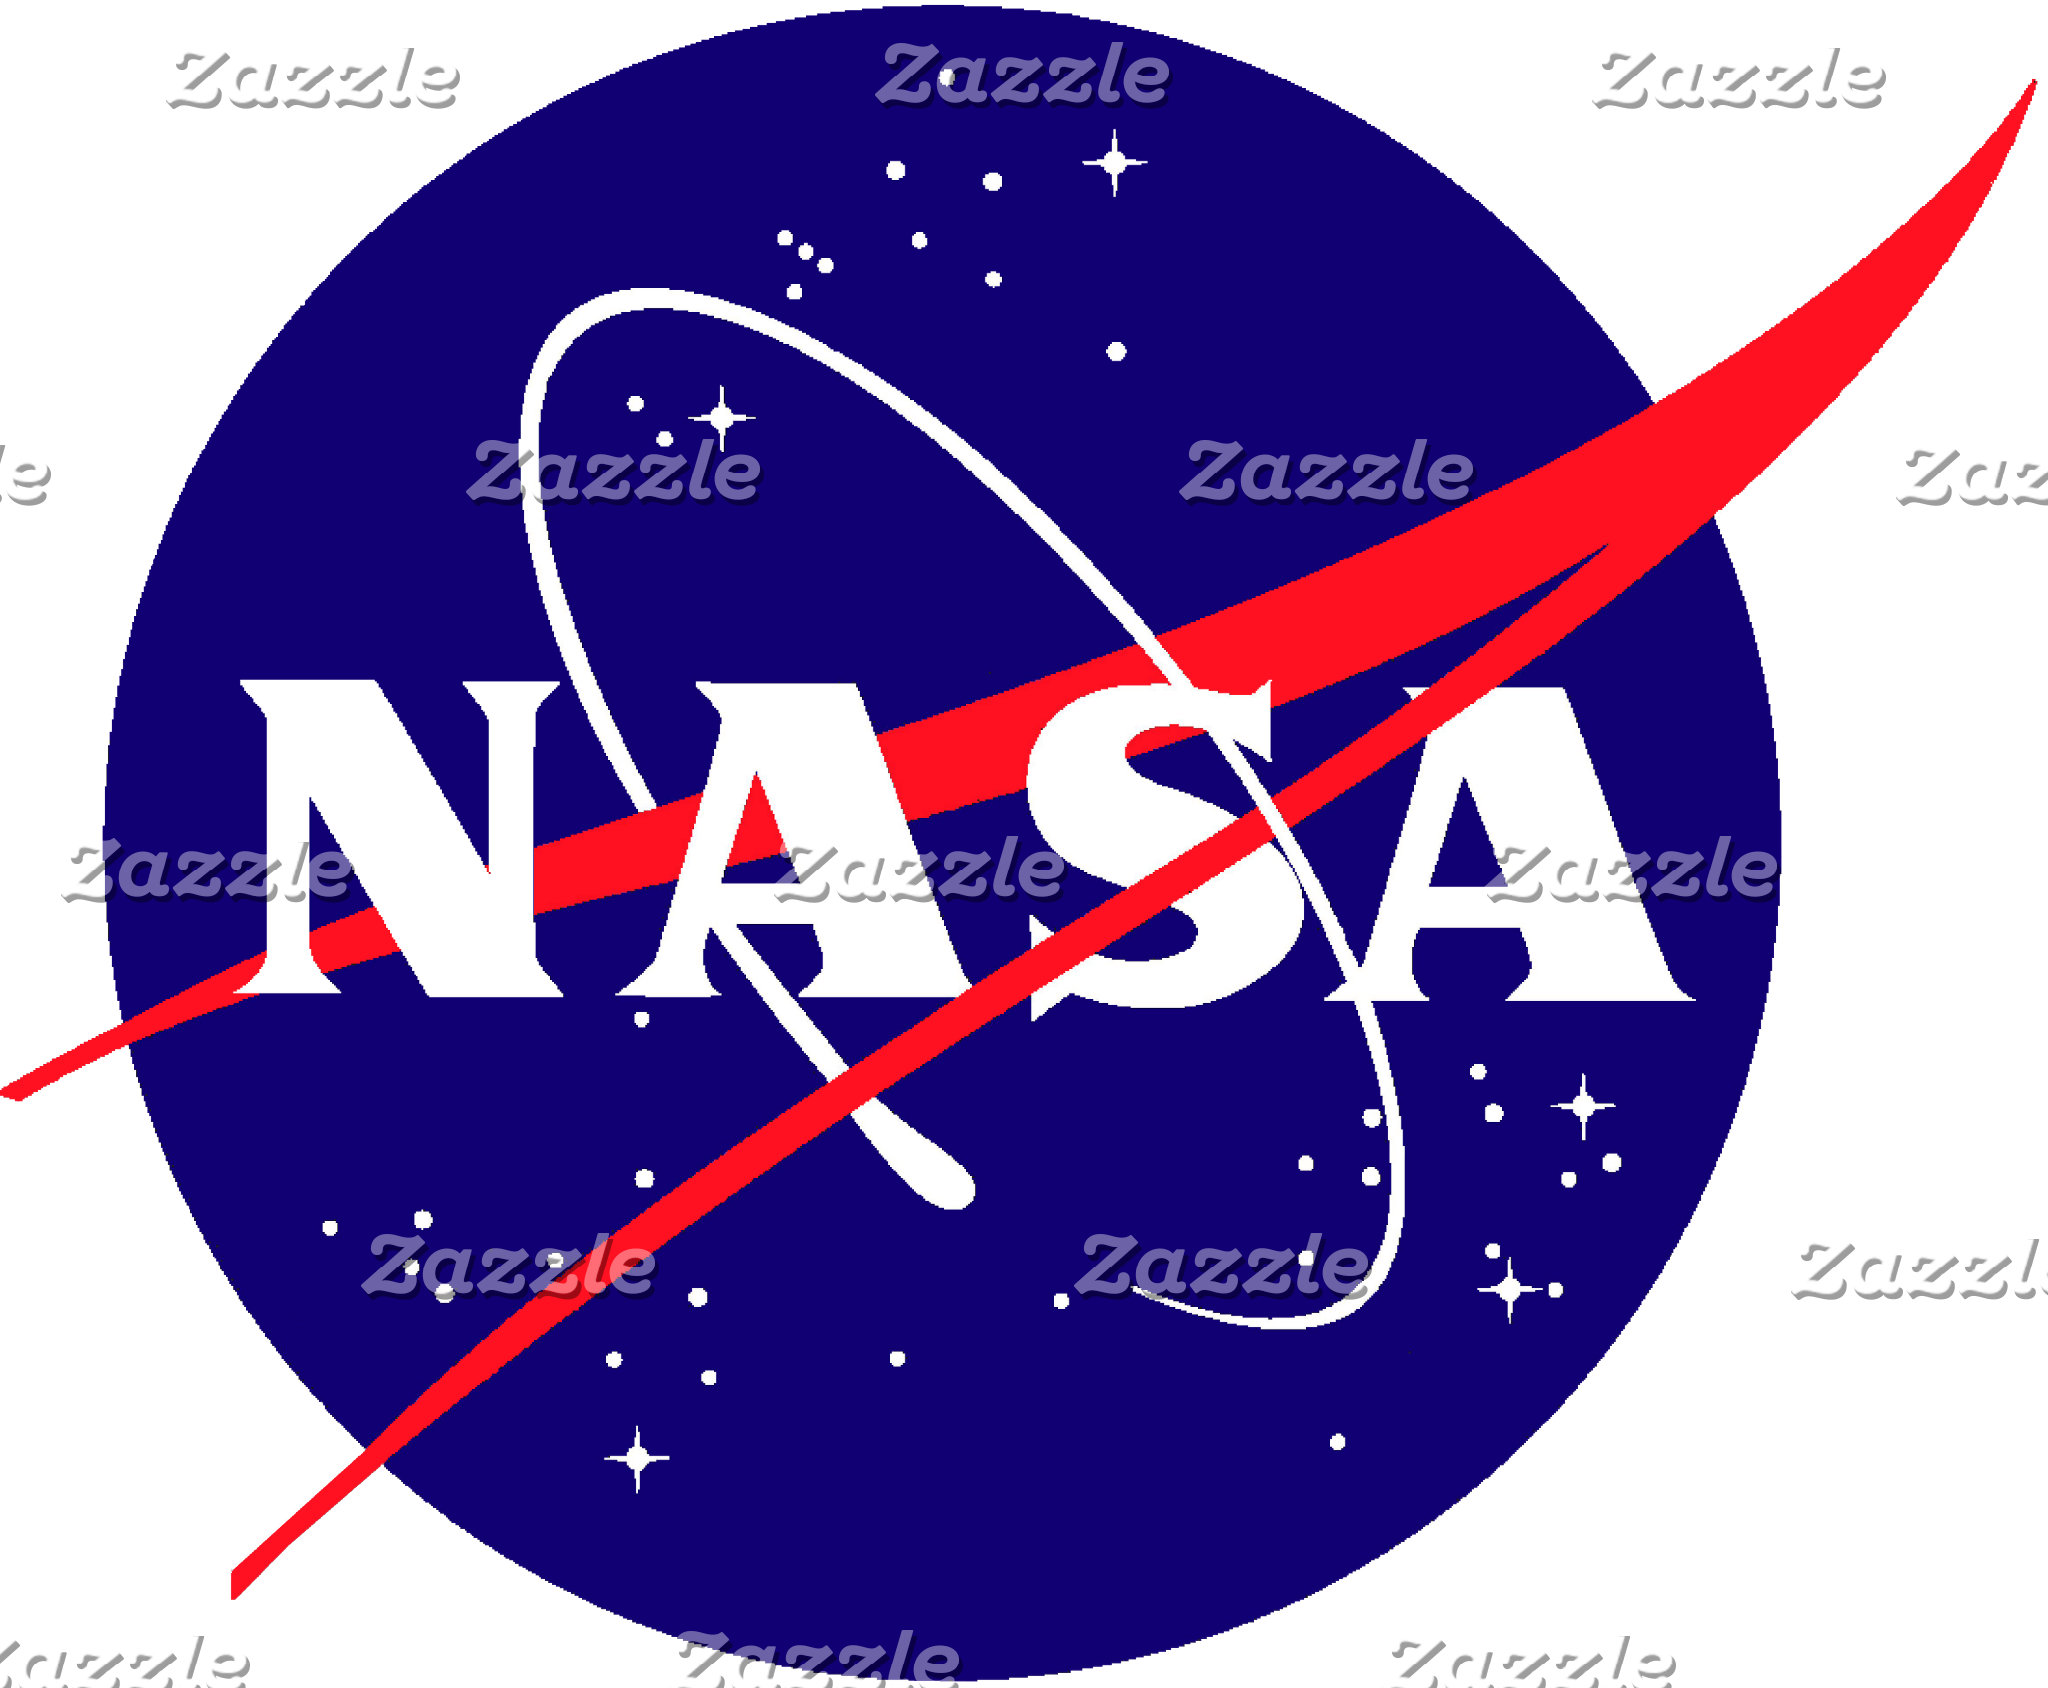 NASA:  The Official Meatball & Worm Logos